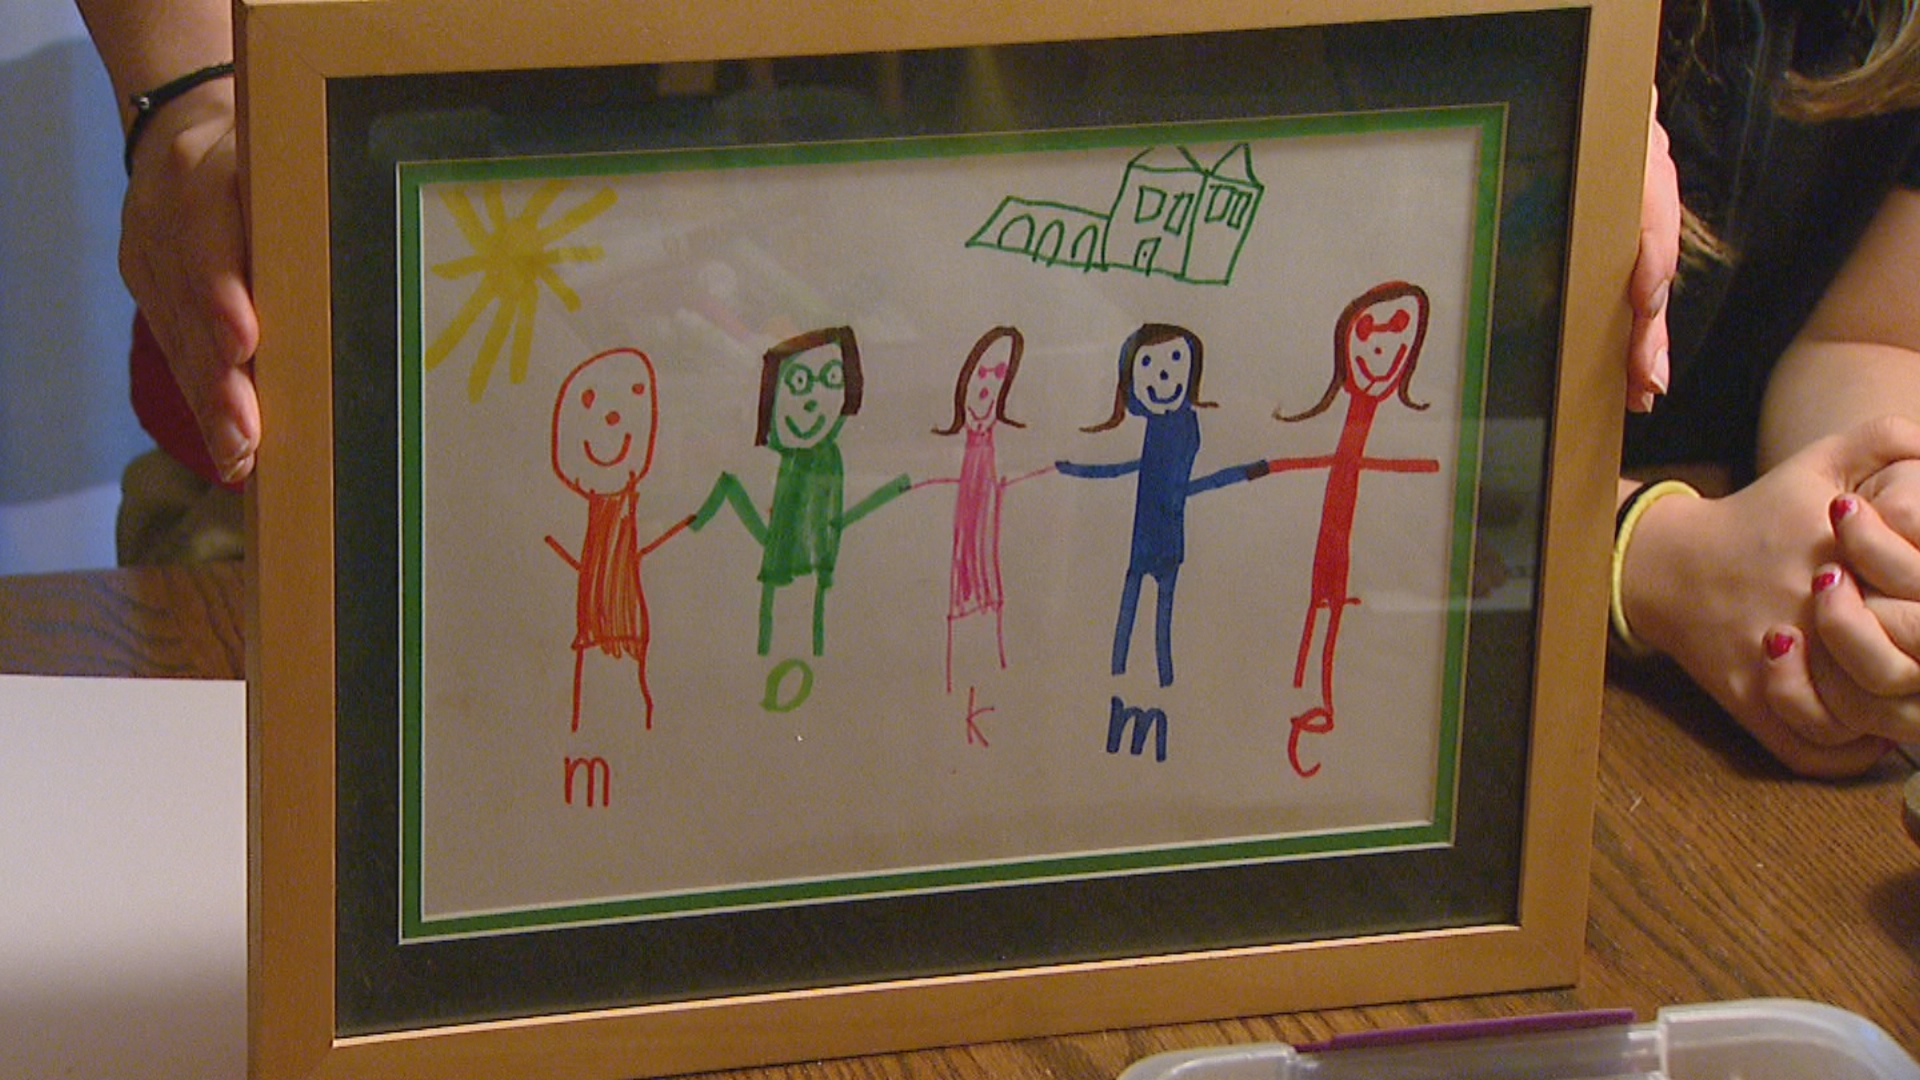 David Gelb's first picture he drew was a family portrait which included Dad Matt, David, Mom Katie and twin sisters Megan and Ellen (WLUK/Jesse Basinski)<p></p>